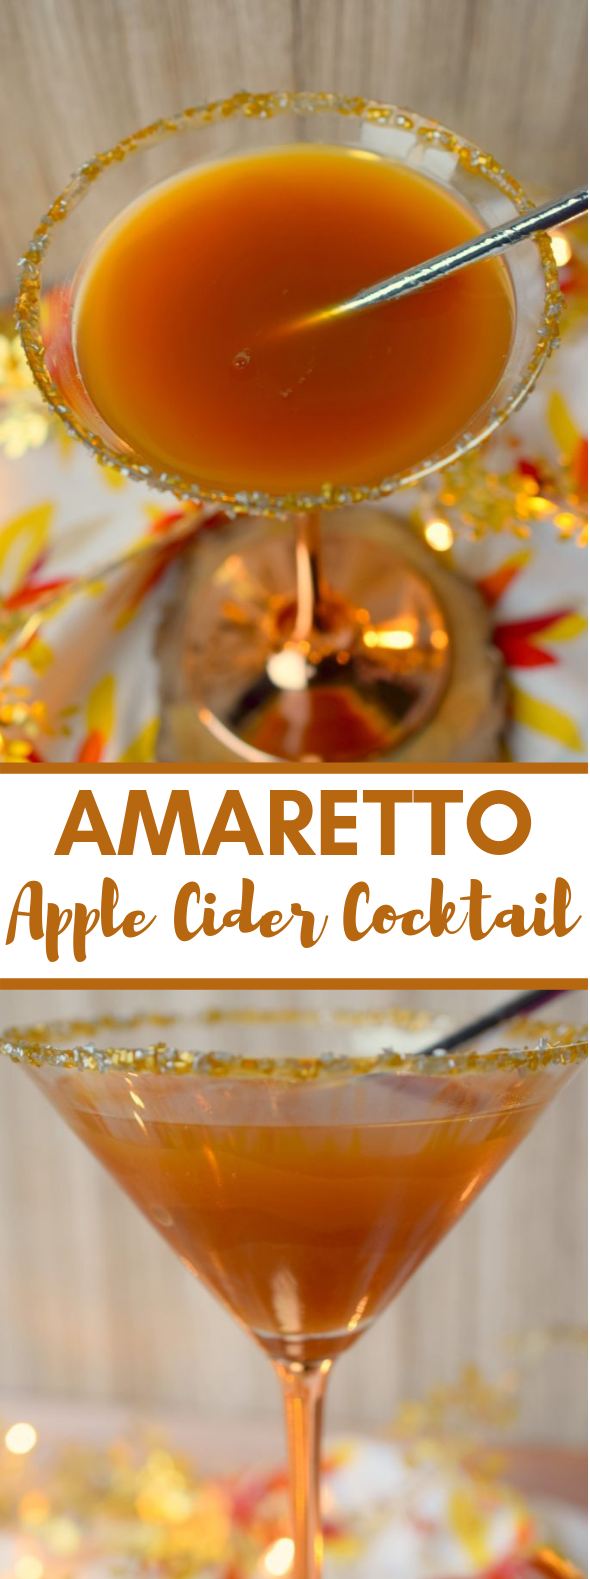 Amaretto Apple Cider Cocktail #drinks #vodka